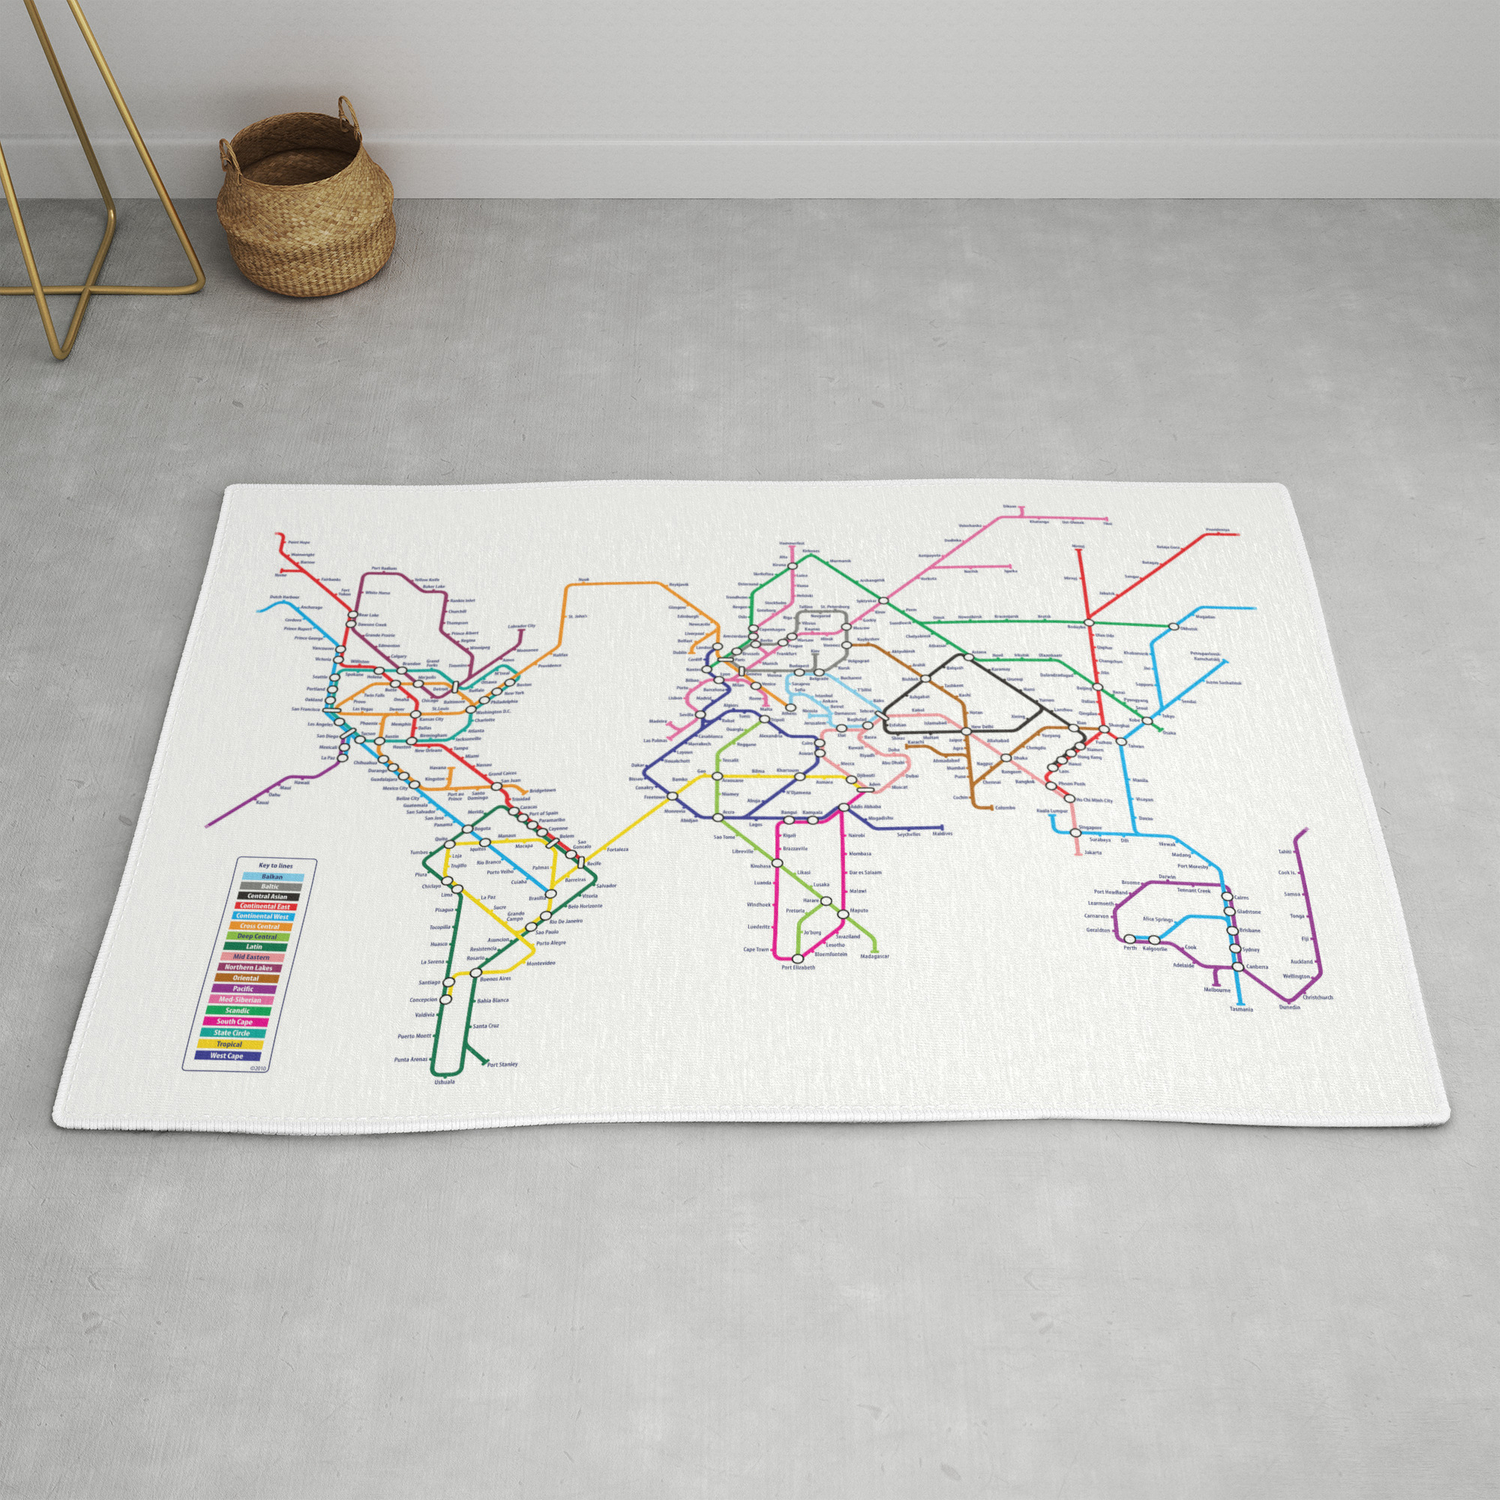 Creative Subway Map.World Metro Subway Map Rug By Artpause